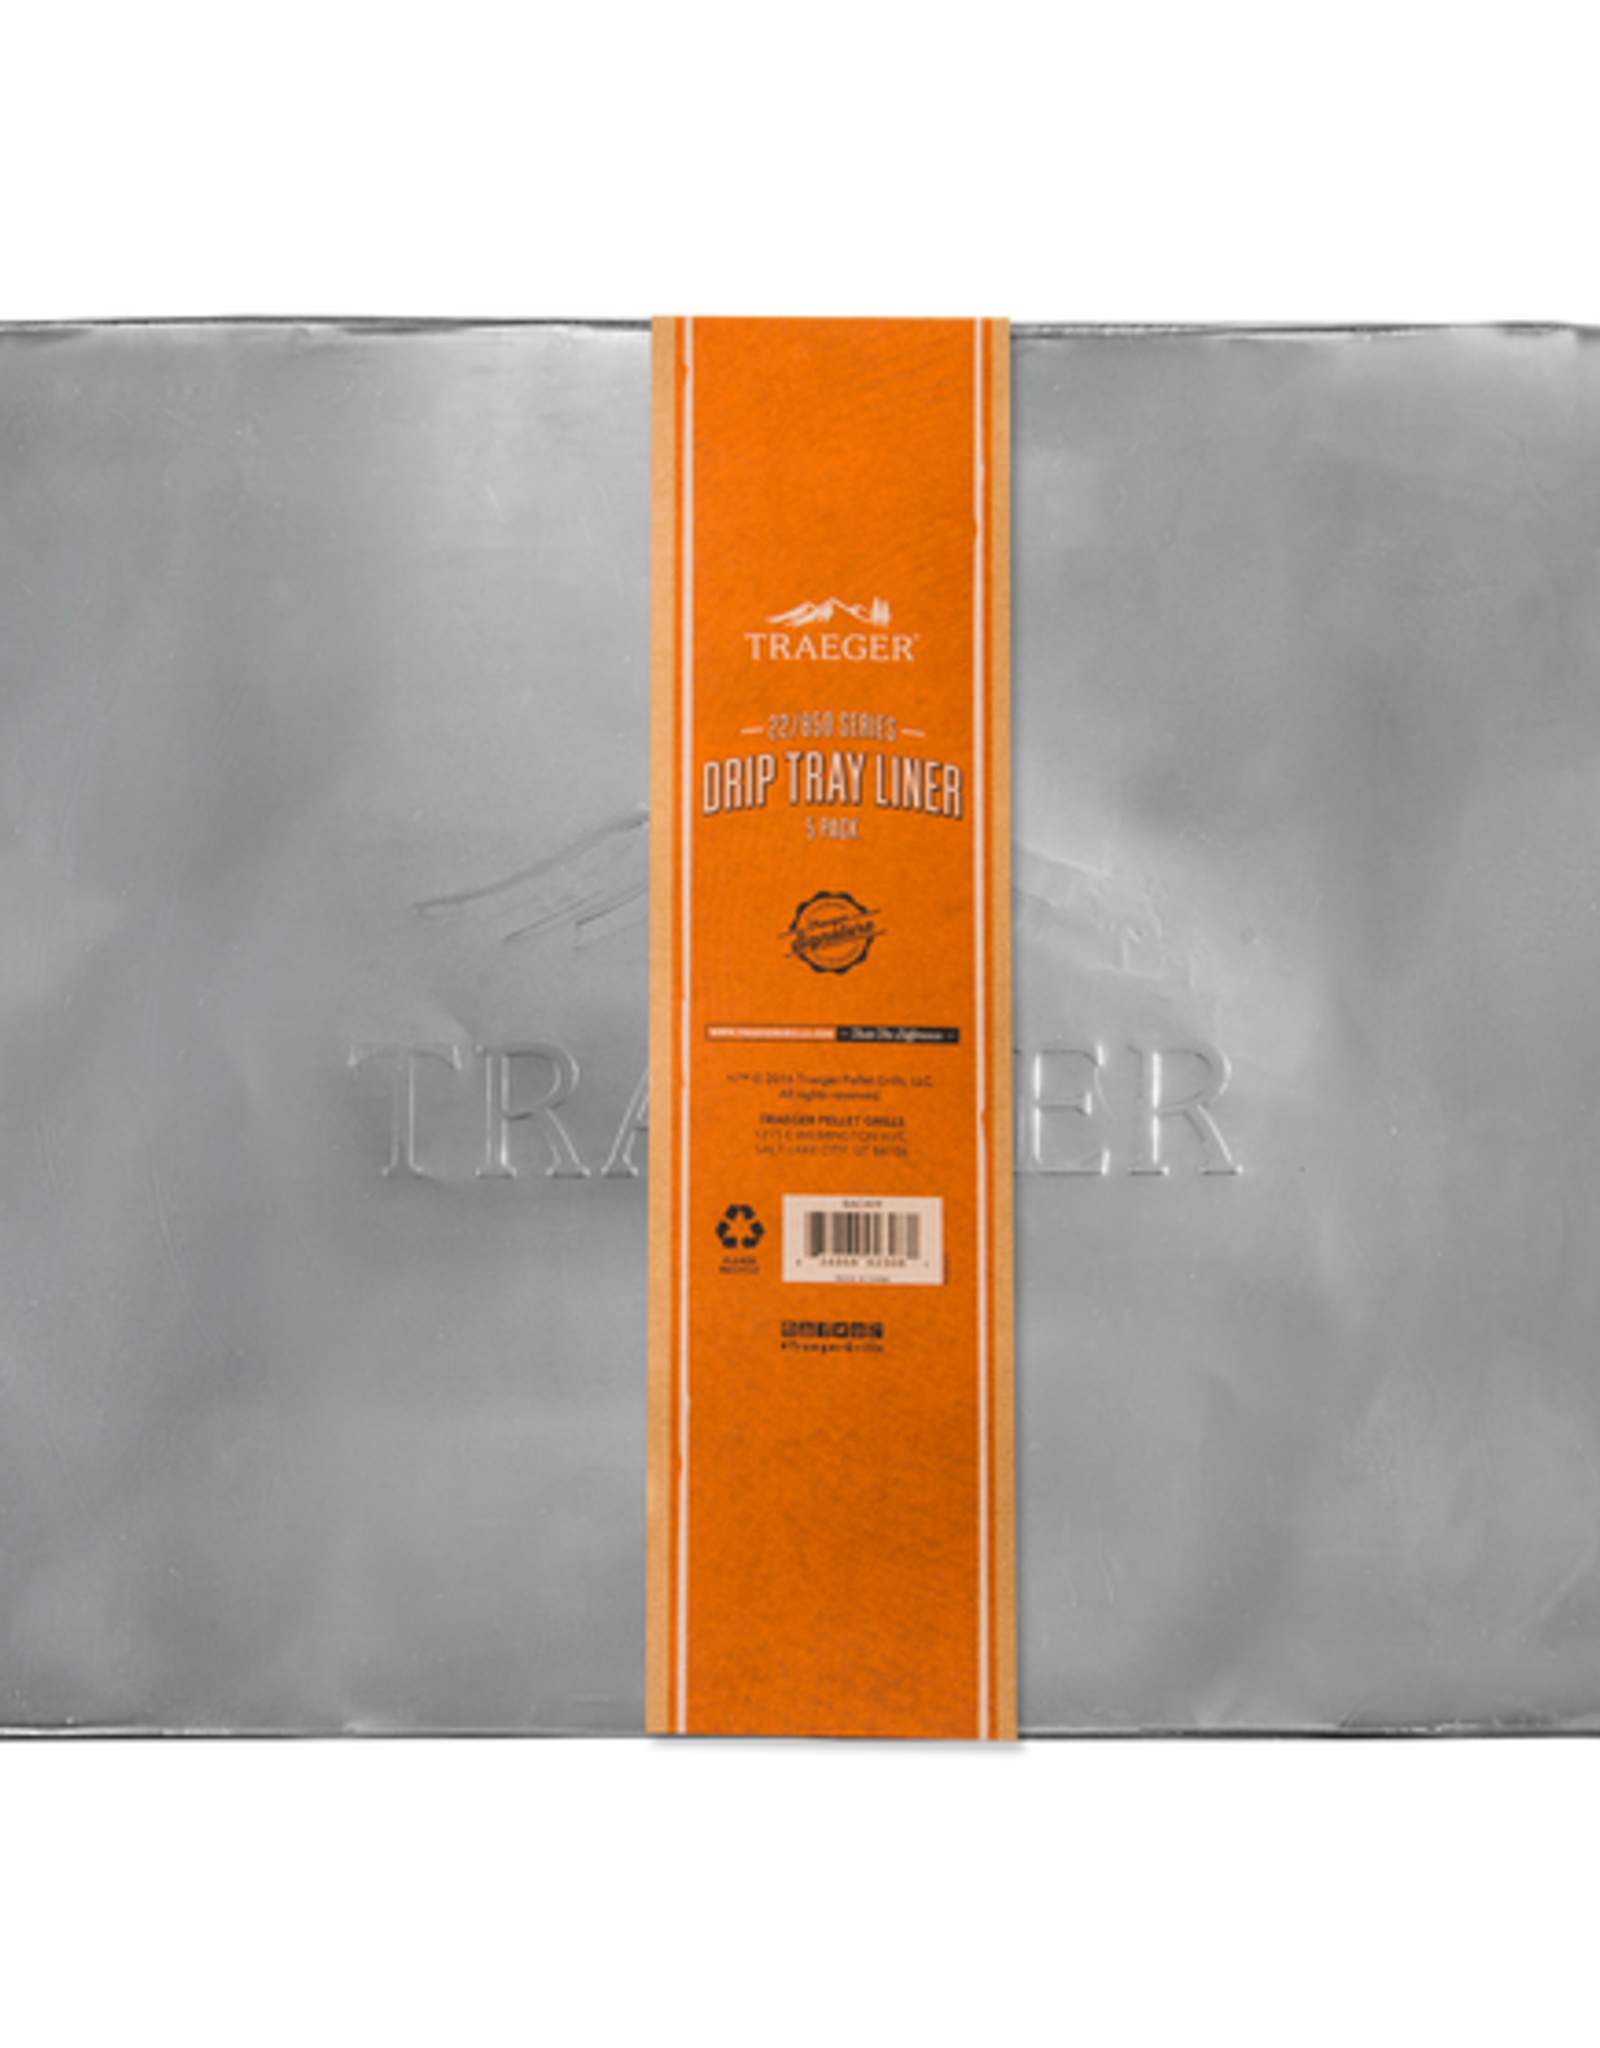 Traeger DRIP TRAY LINER 5 PACK - PRO 575/22